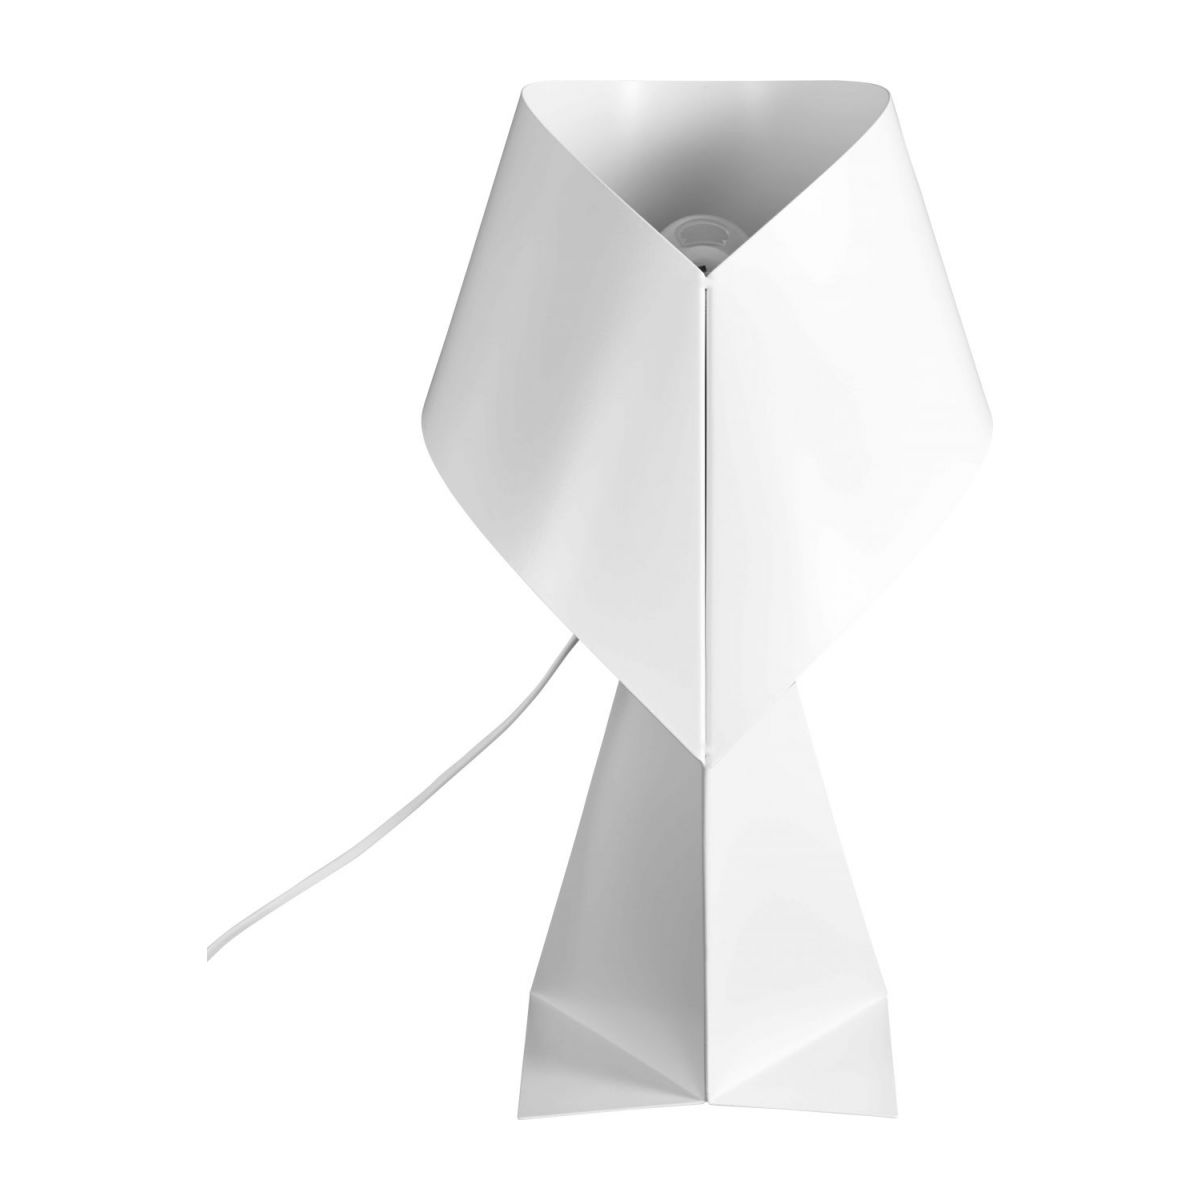 Lampe de table en métal - Blanc - 52 cm n°3